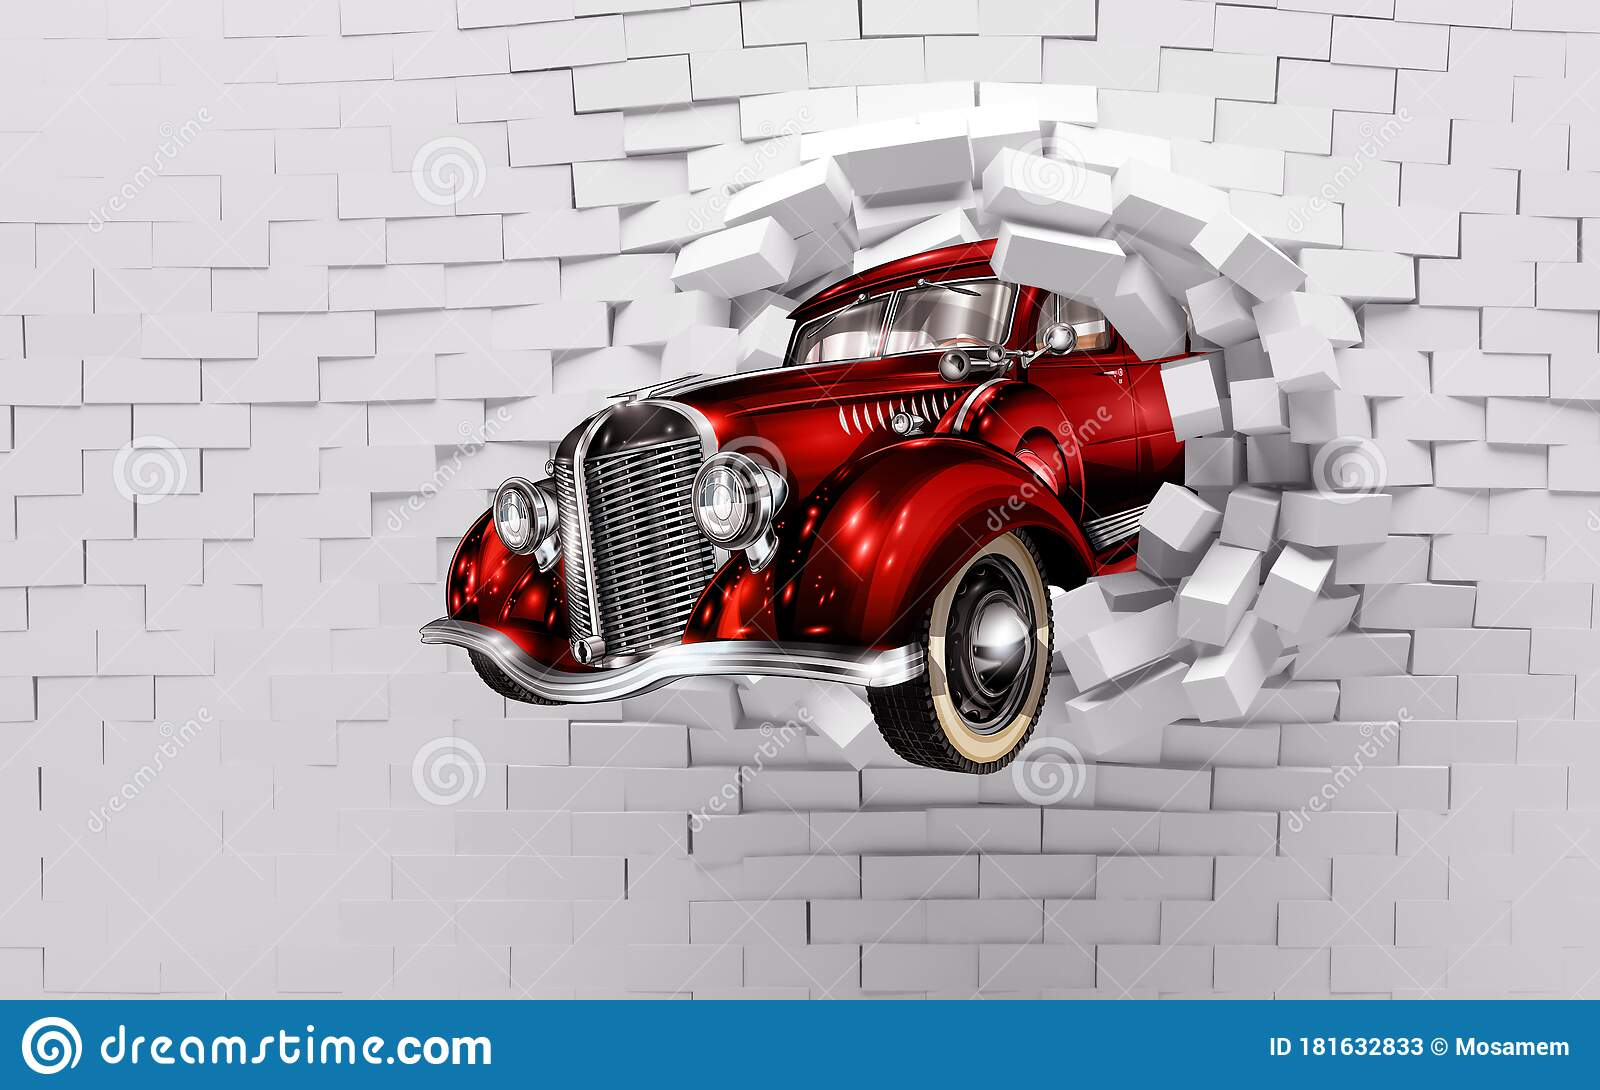 60+ kids room wall decor sticker ideas & 3d Mural Wallpaper Broken Wall Bricks And Red Classic Car World Map In Colored Background Suitable For Childrens And Kids Bed R Stock Illustration Illustration Of Gray Holiday 181632833